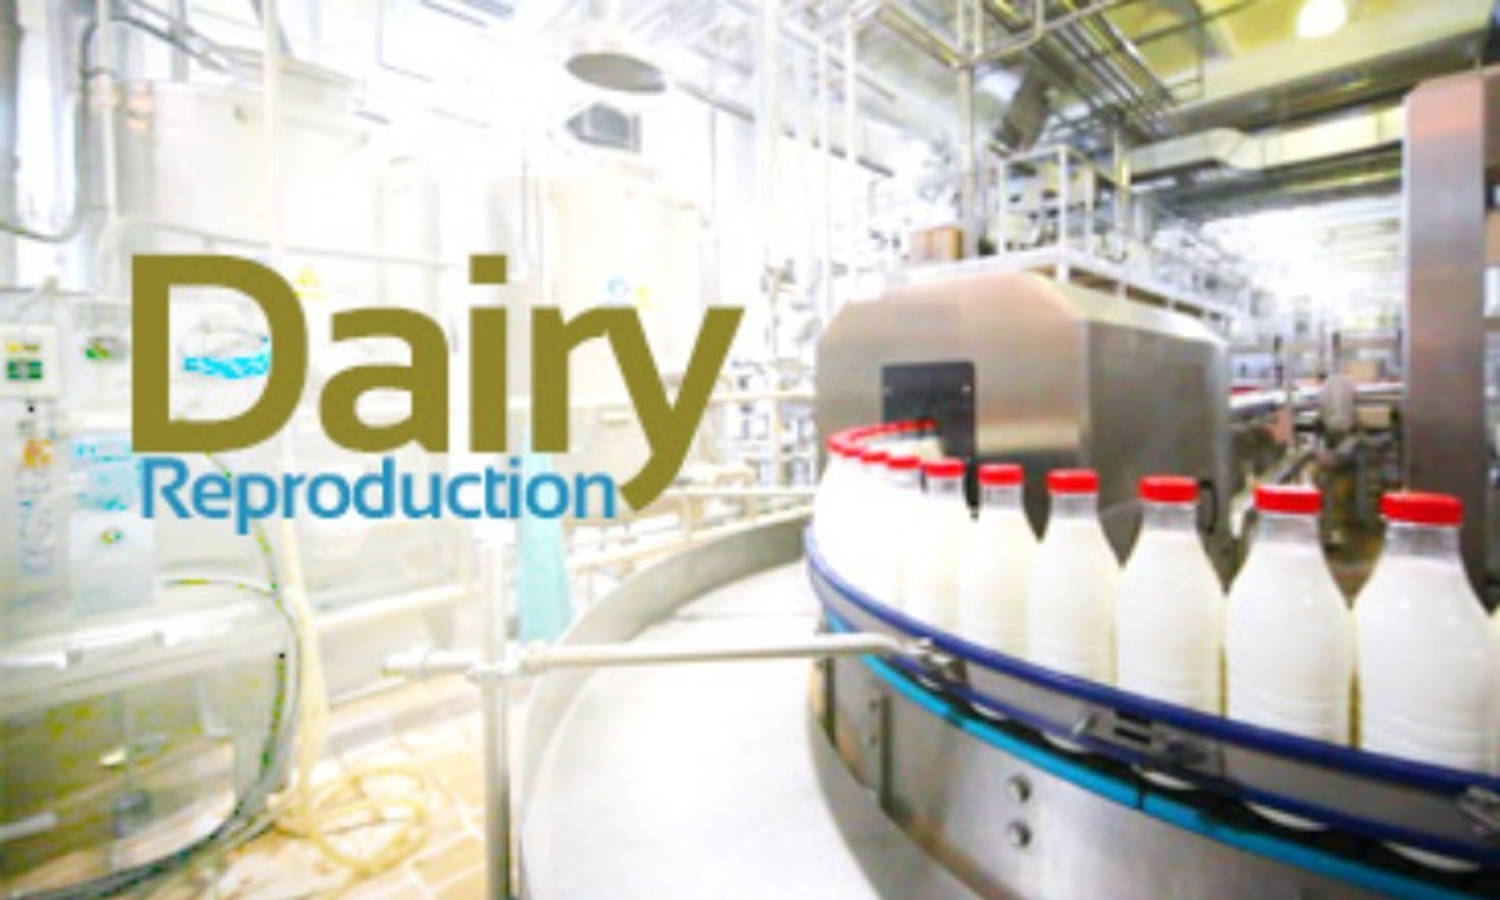 Dairy Reproduction